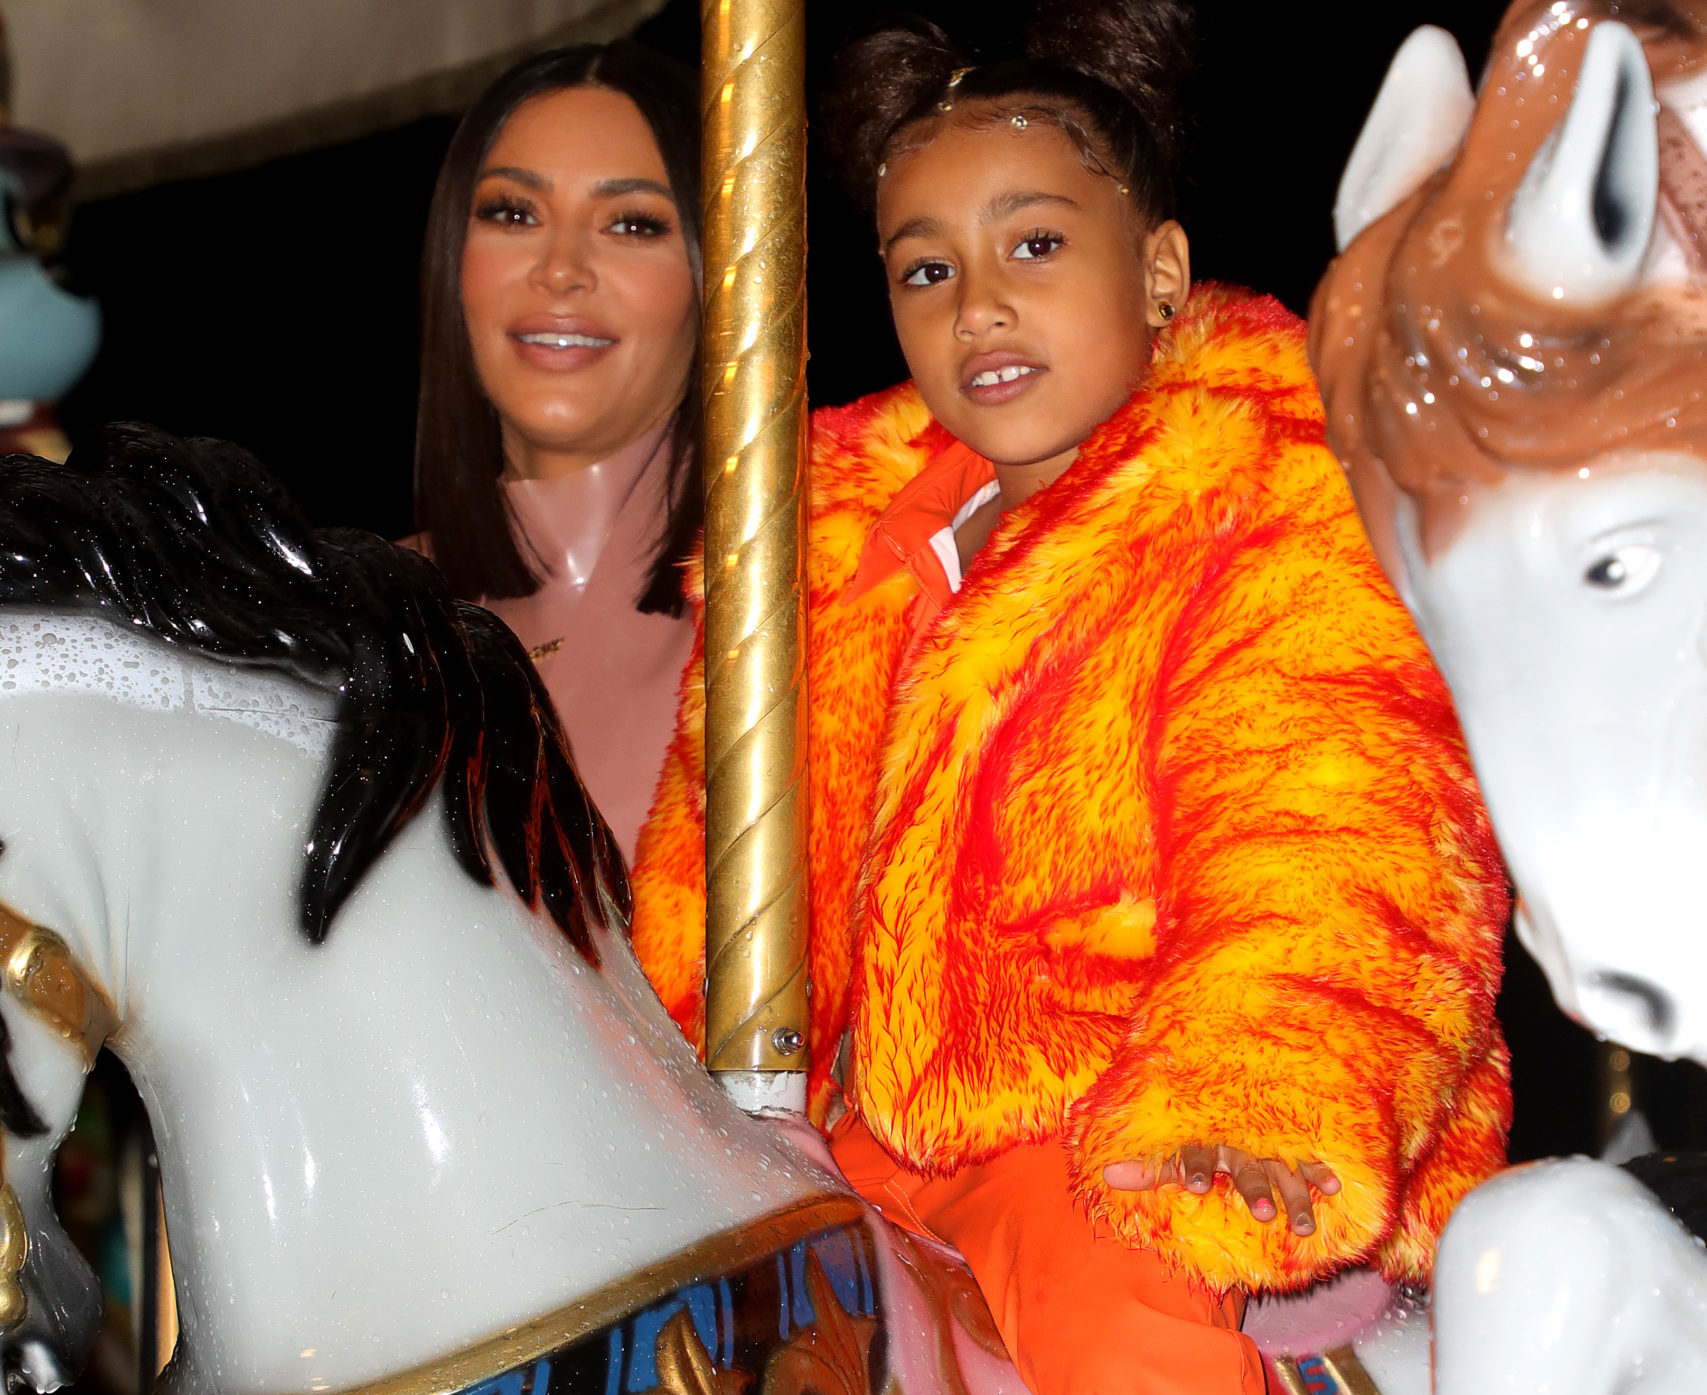 Kim Kardashian shares that North West calls their home ugly every time she is upset after they get into a disagreement.